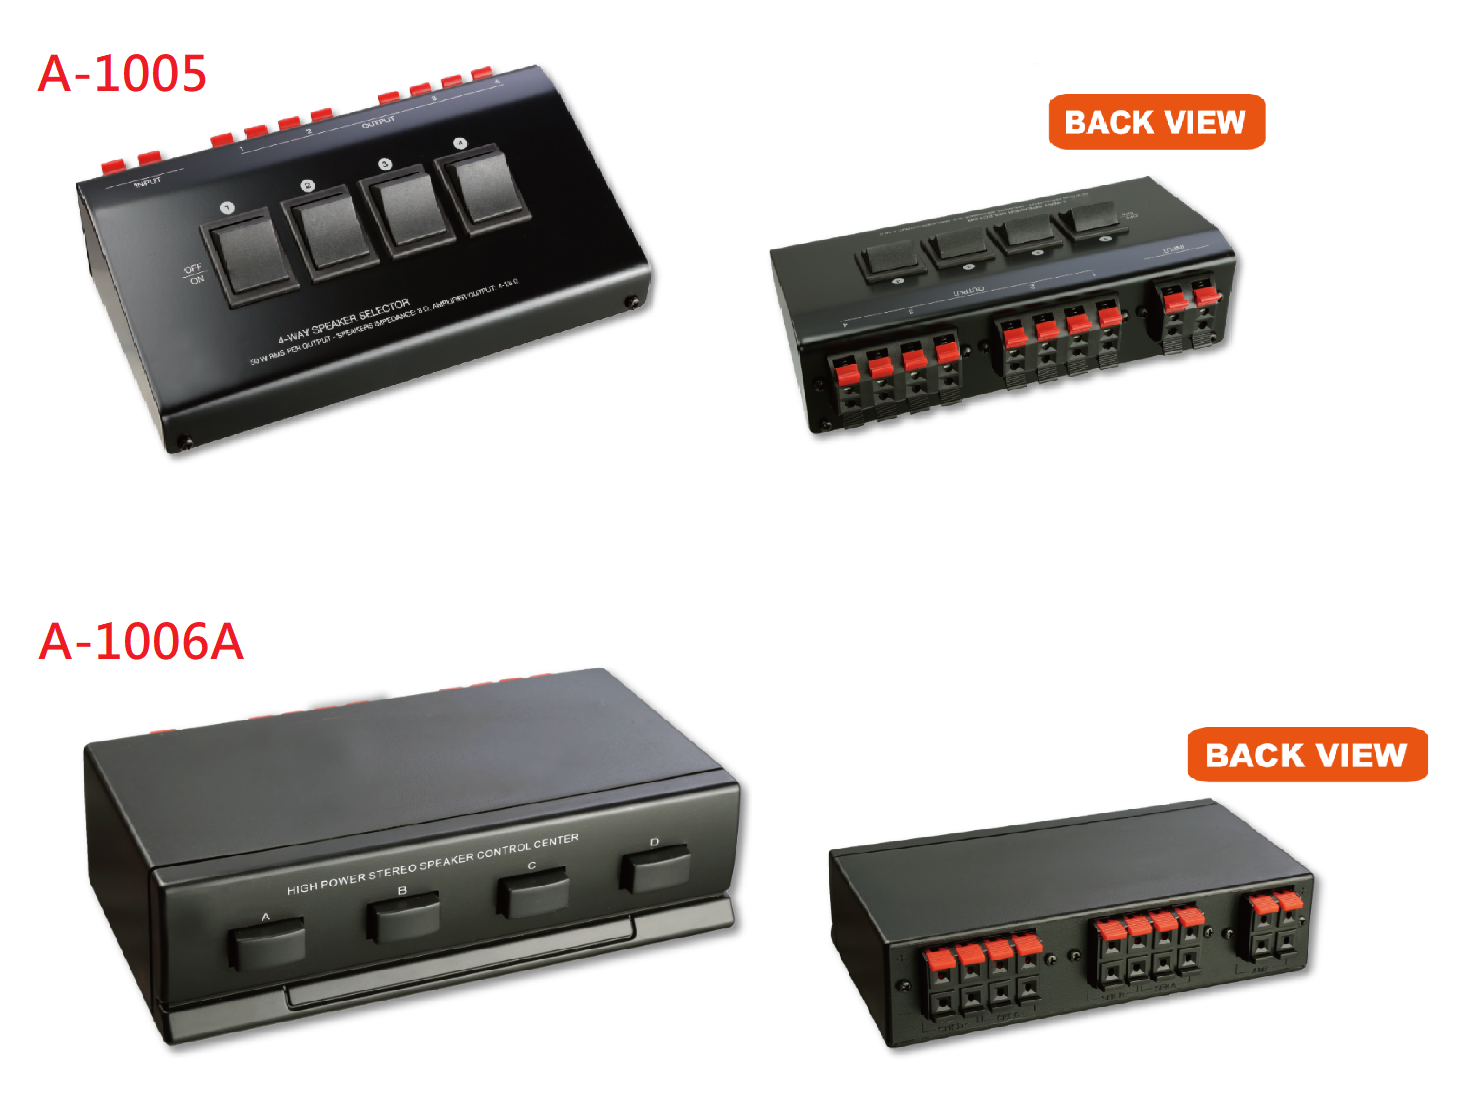 A-1005 / A-1006A : High Power 4 Way Stereo Speaker Switch